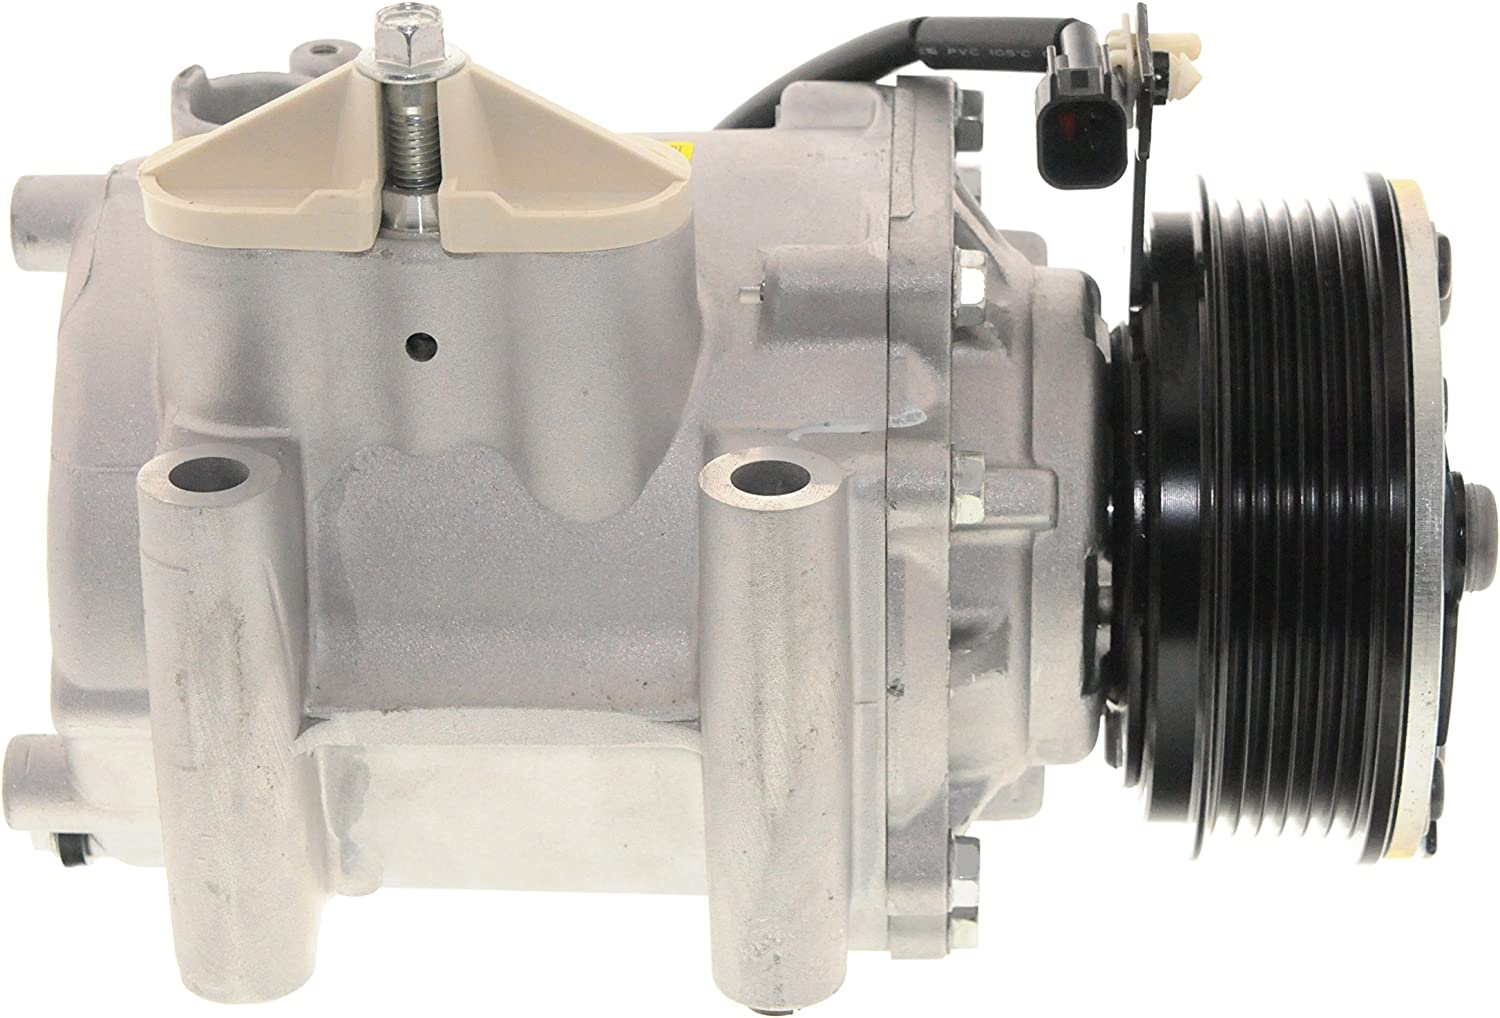 GM Genuine Parts Sacramento Mall Charlotte Mall 15-22252 Air Conditioning and Clutch Compressor